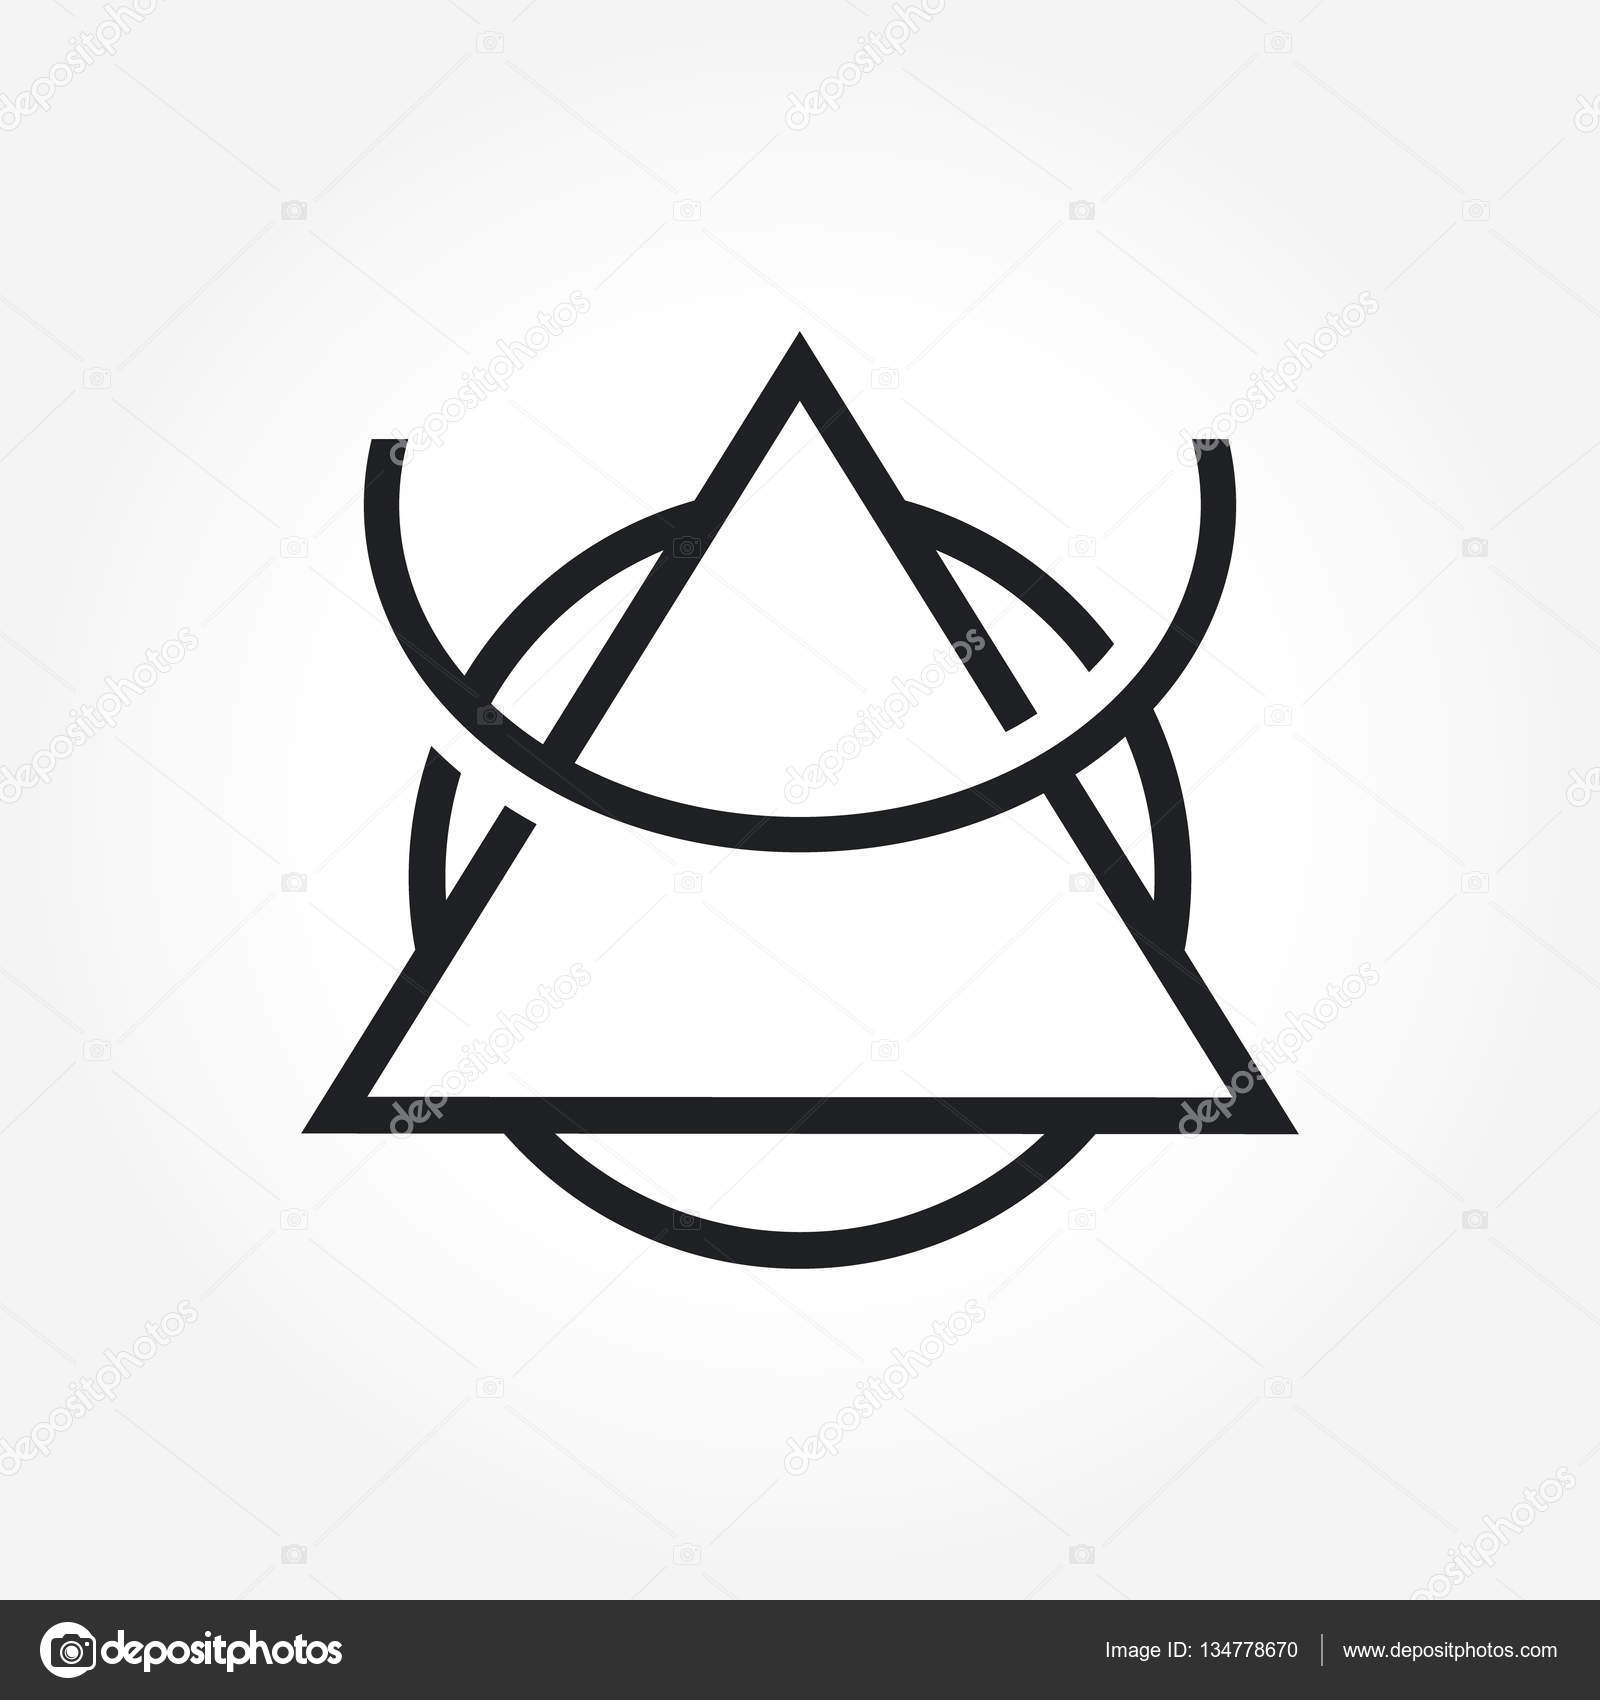 Triangle symbol design stock vector srirejeki 134778670 a simple triangle symbol for your business that quite unique so it can stand from the crowd easy to implement in future needs vector by srirejeki buycottarizona